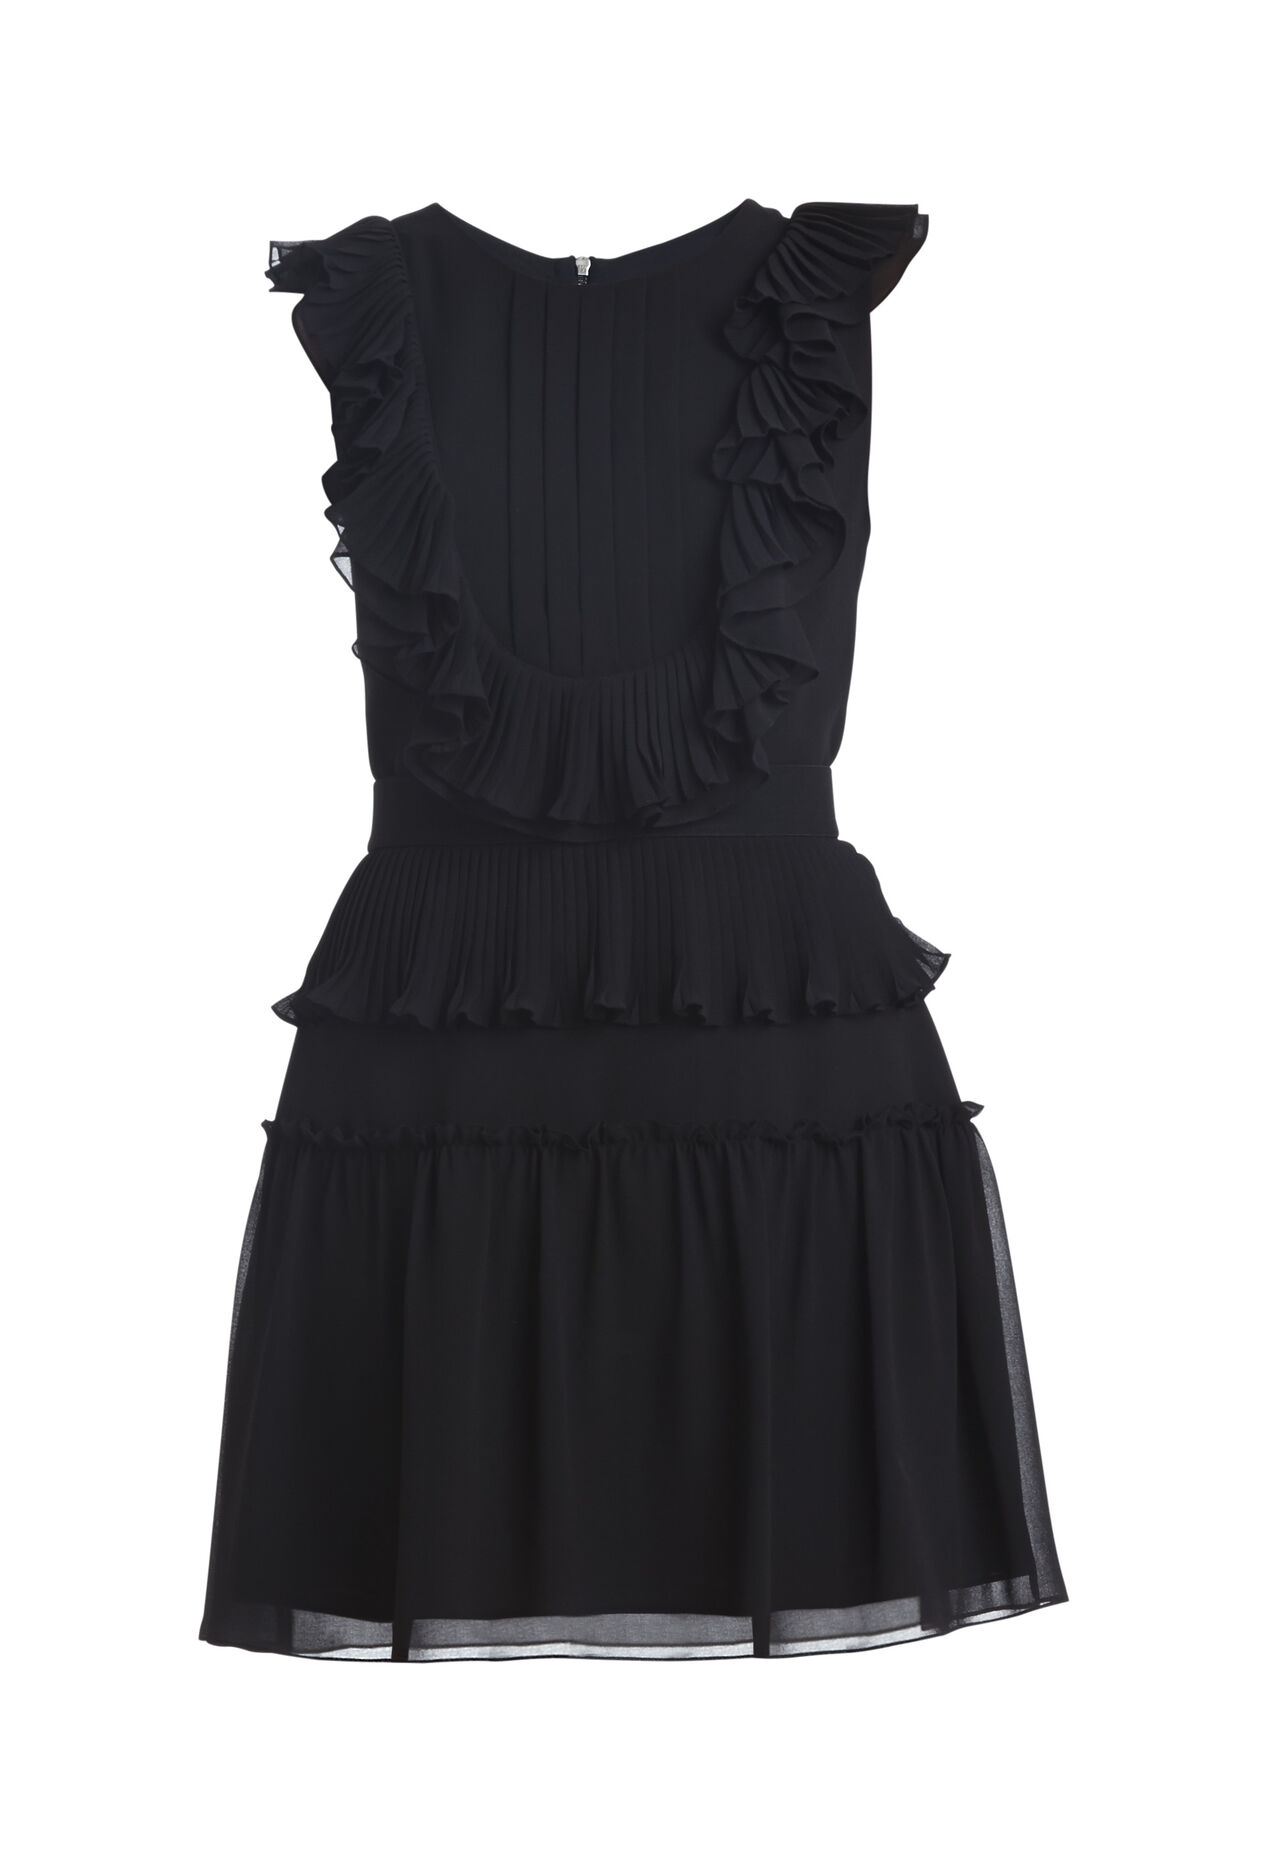 Britt Pleated Ruffle Dress